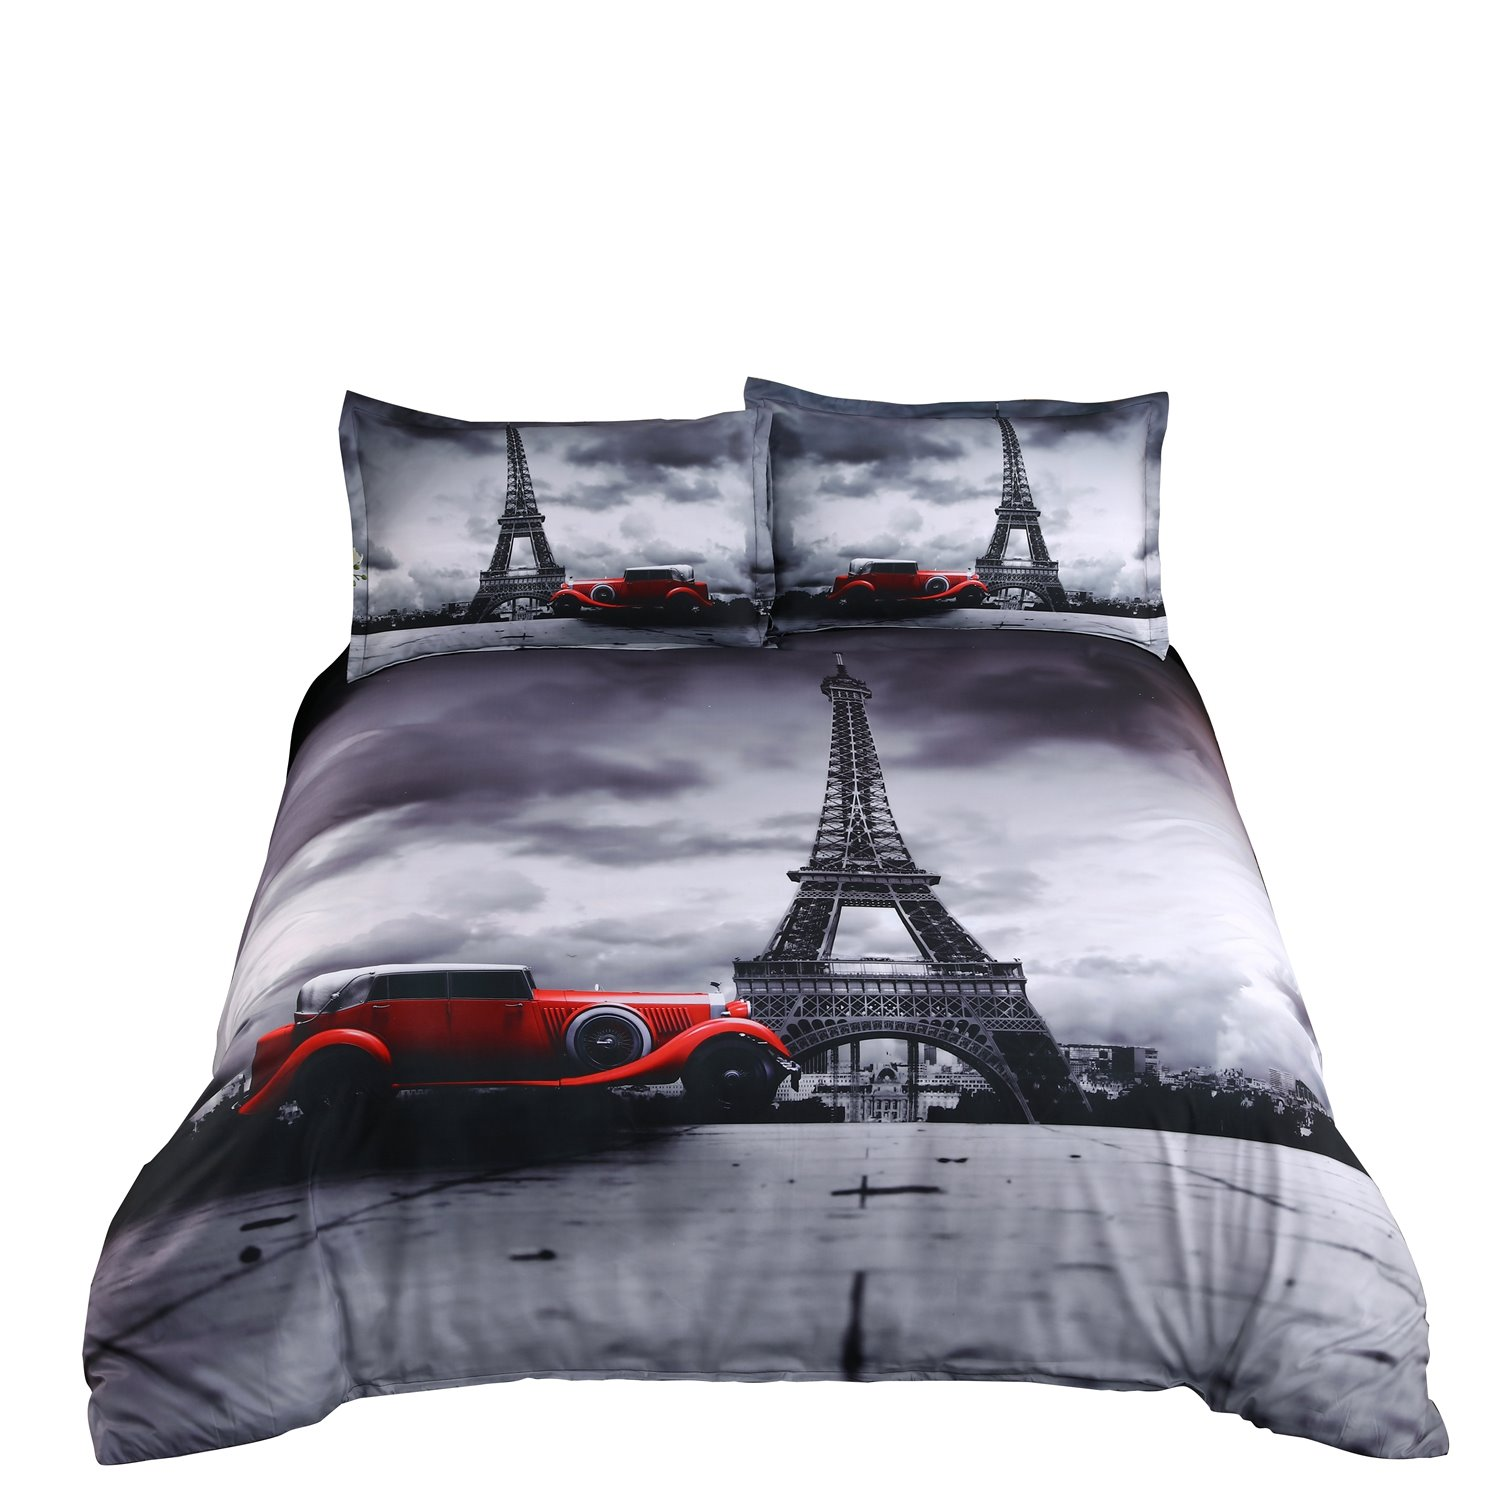 3D Paris Eiffel Tower and Vintage Car Printed Cotton 4-Piece Bedding Sets